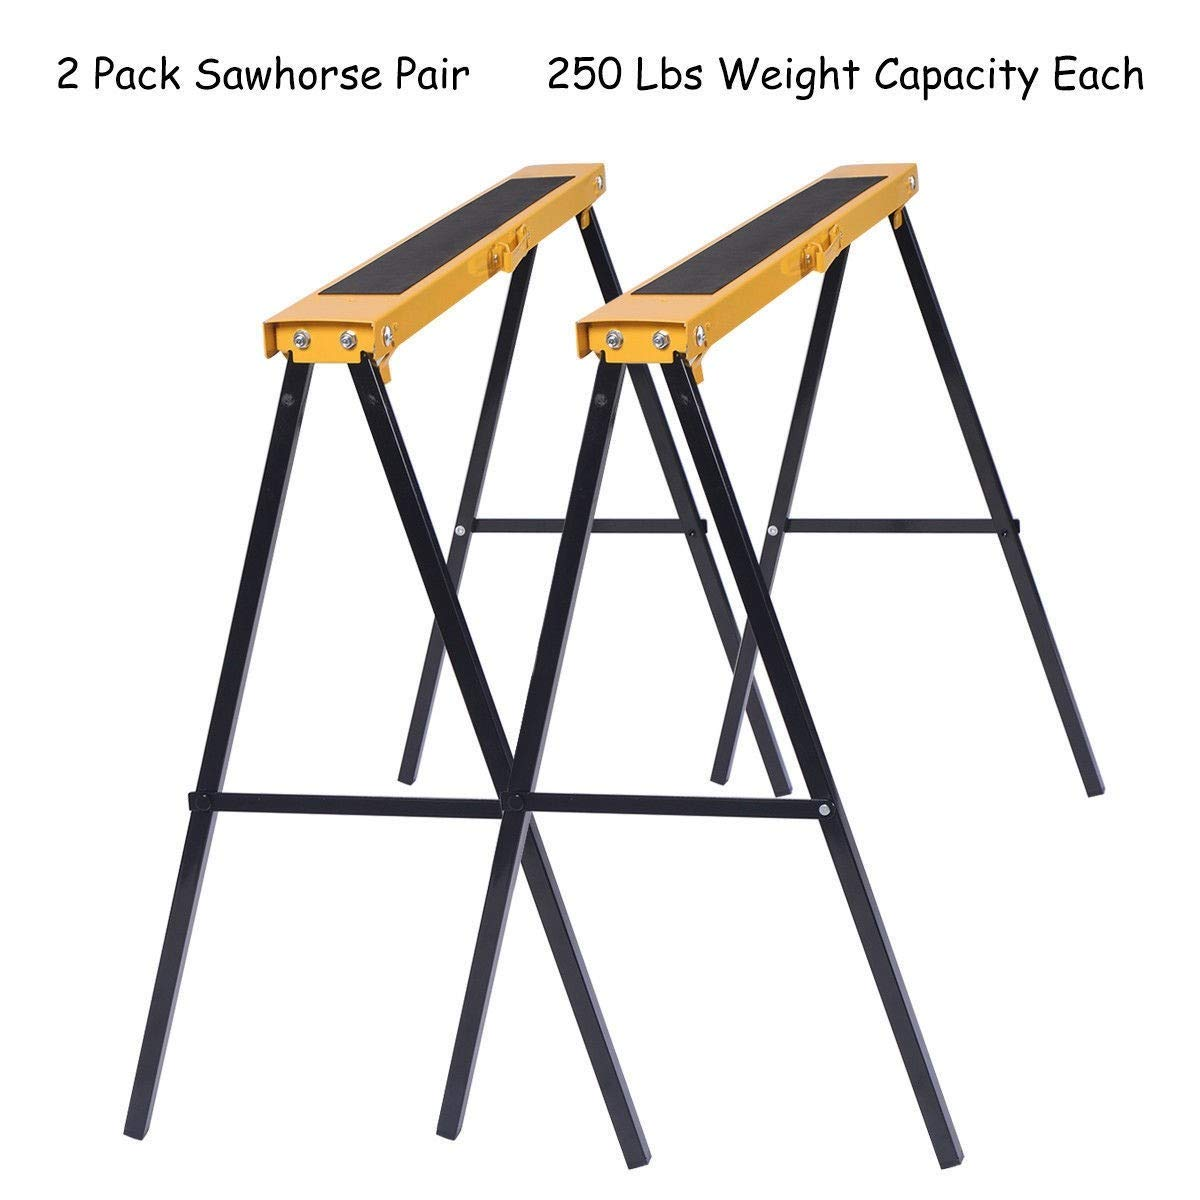 Sawhorse Heavy Duty Folding 2 Pack Steel Portable Saw Horse Legs Pair Workshop MD Group by MD Group (Image #3)